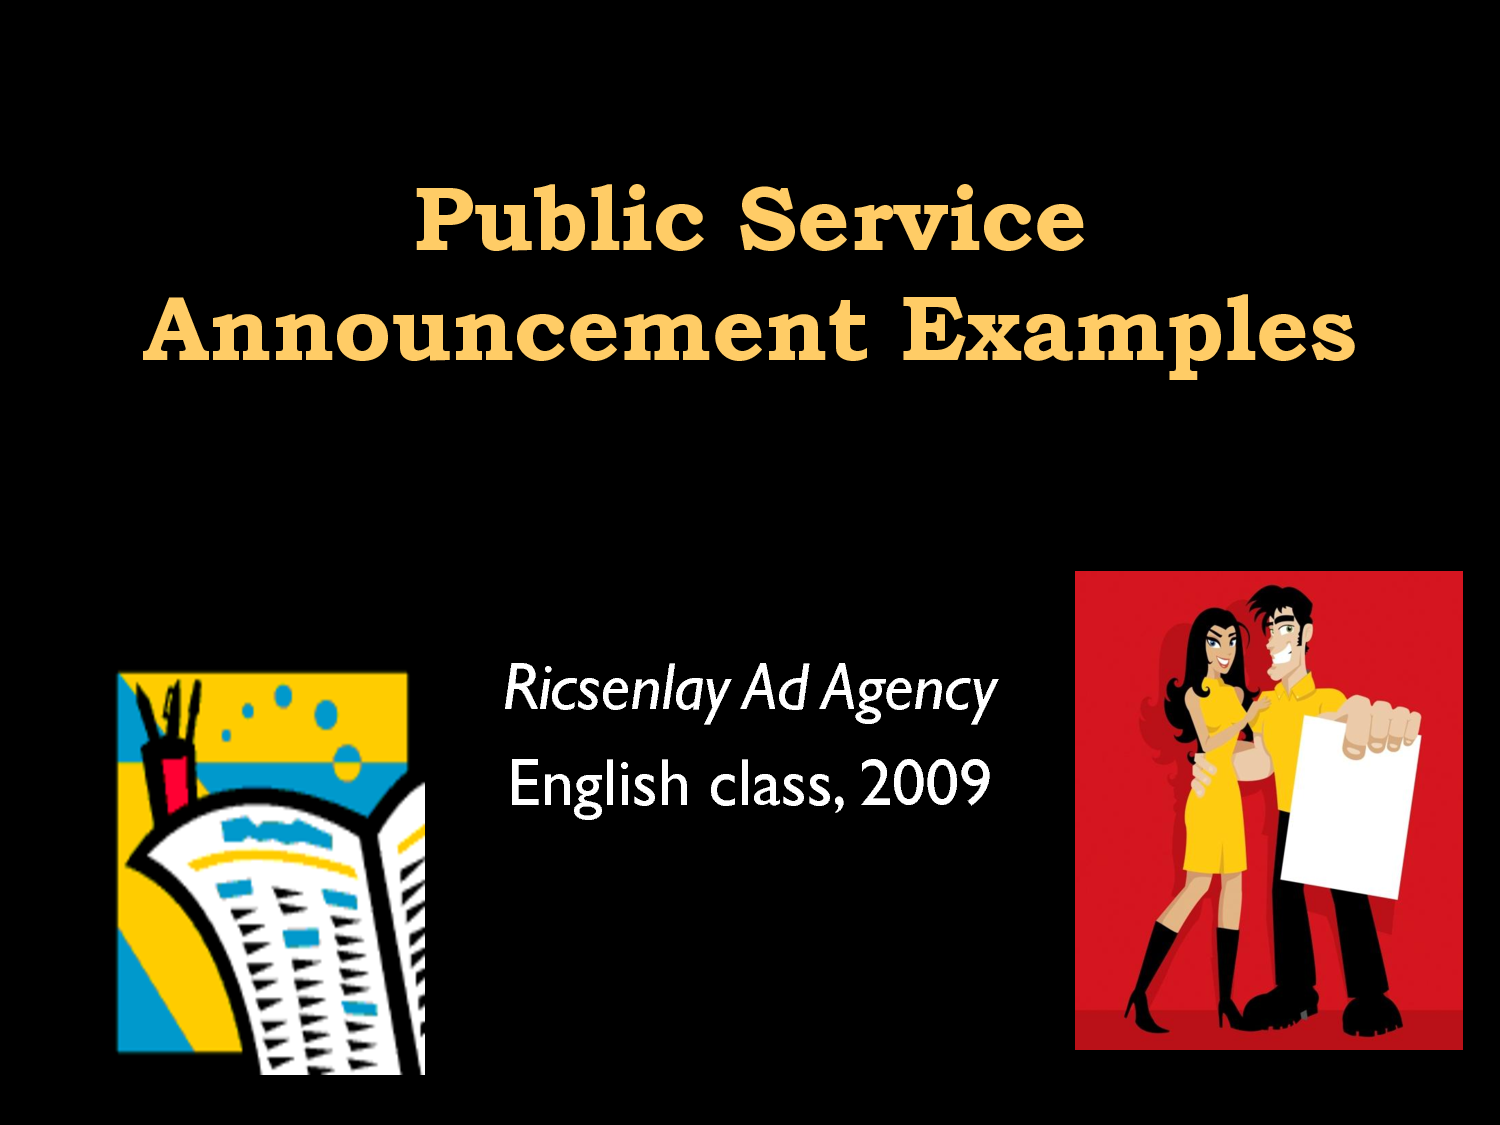 public service announcement examples powerpoint free image